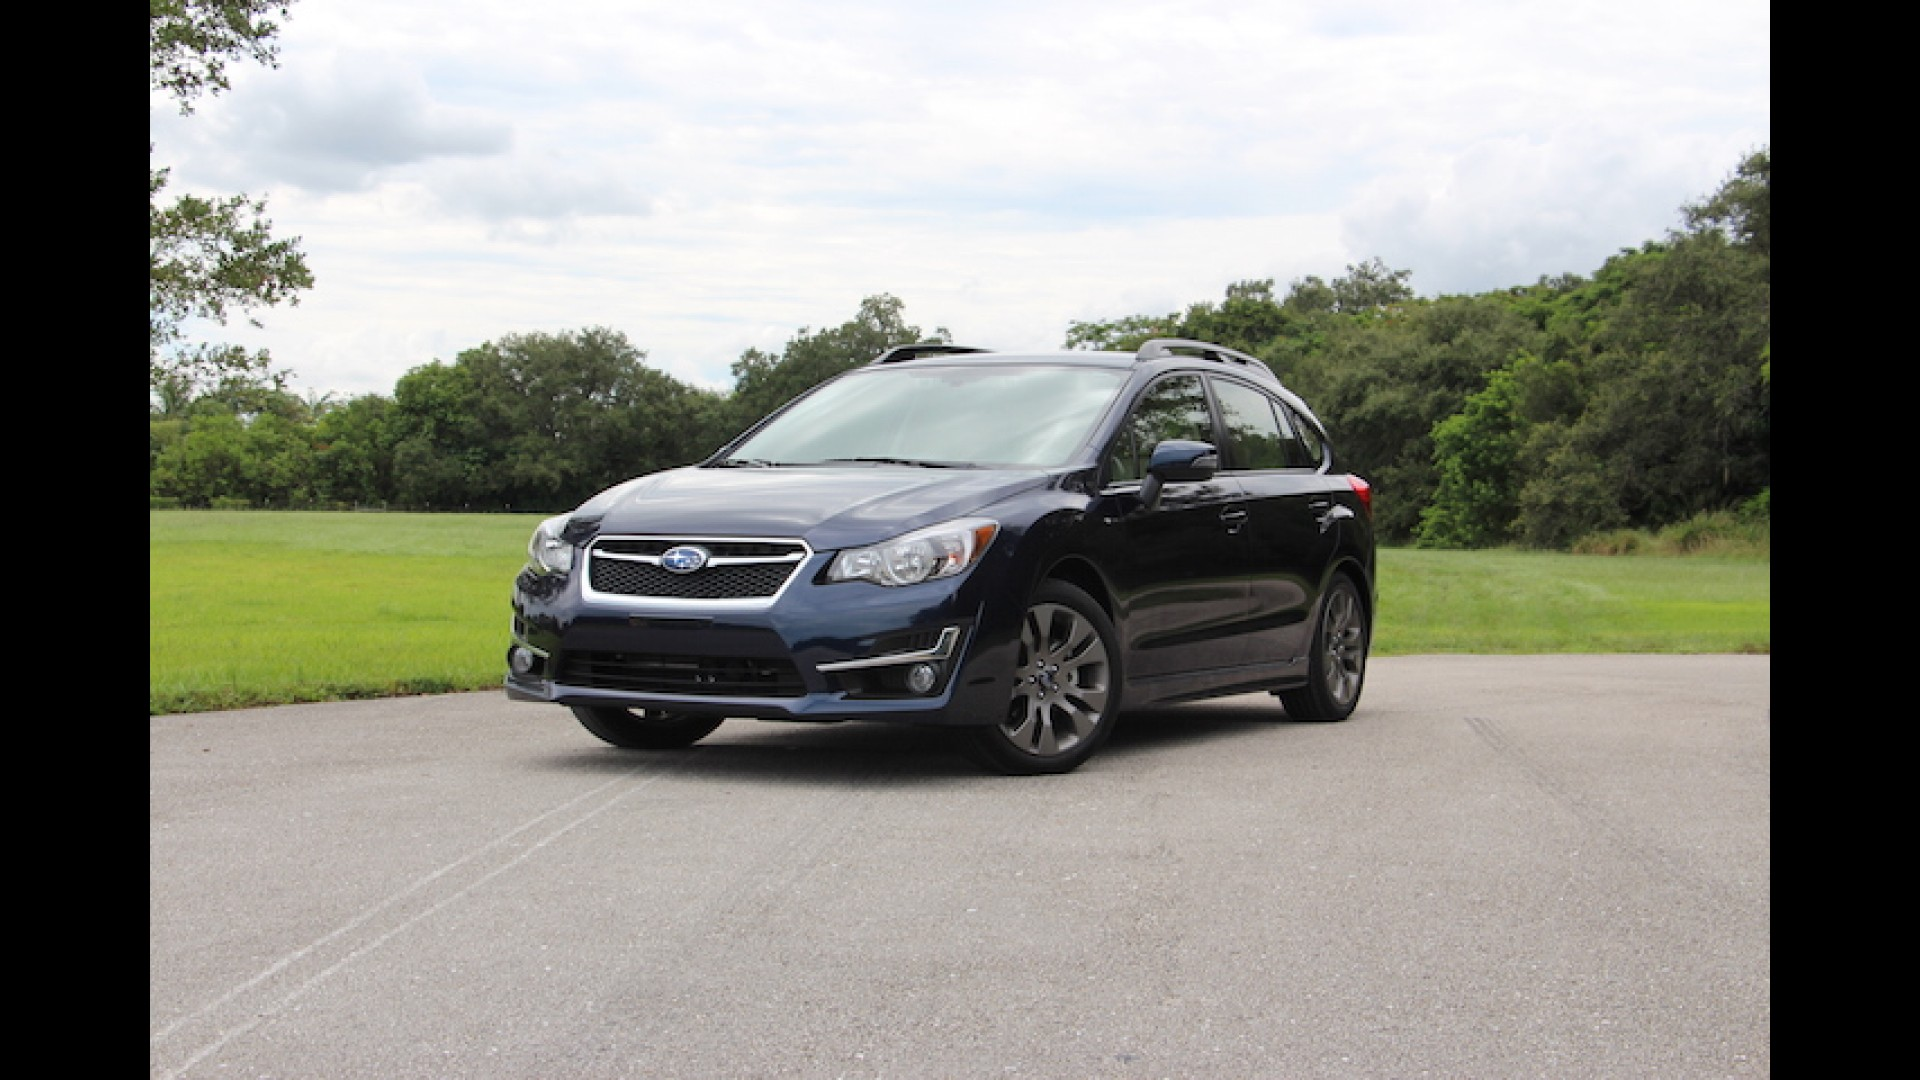 The 2016 Subaru Impreza Hatchback Is Vanilla With All Wheel Drive Review Jpg